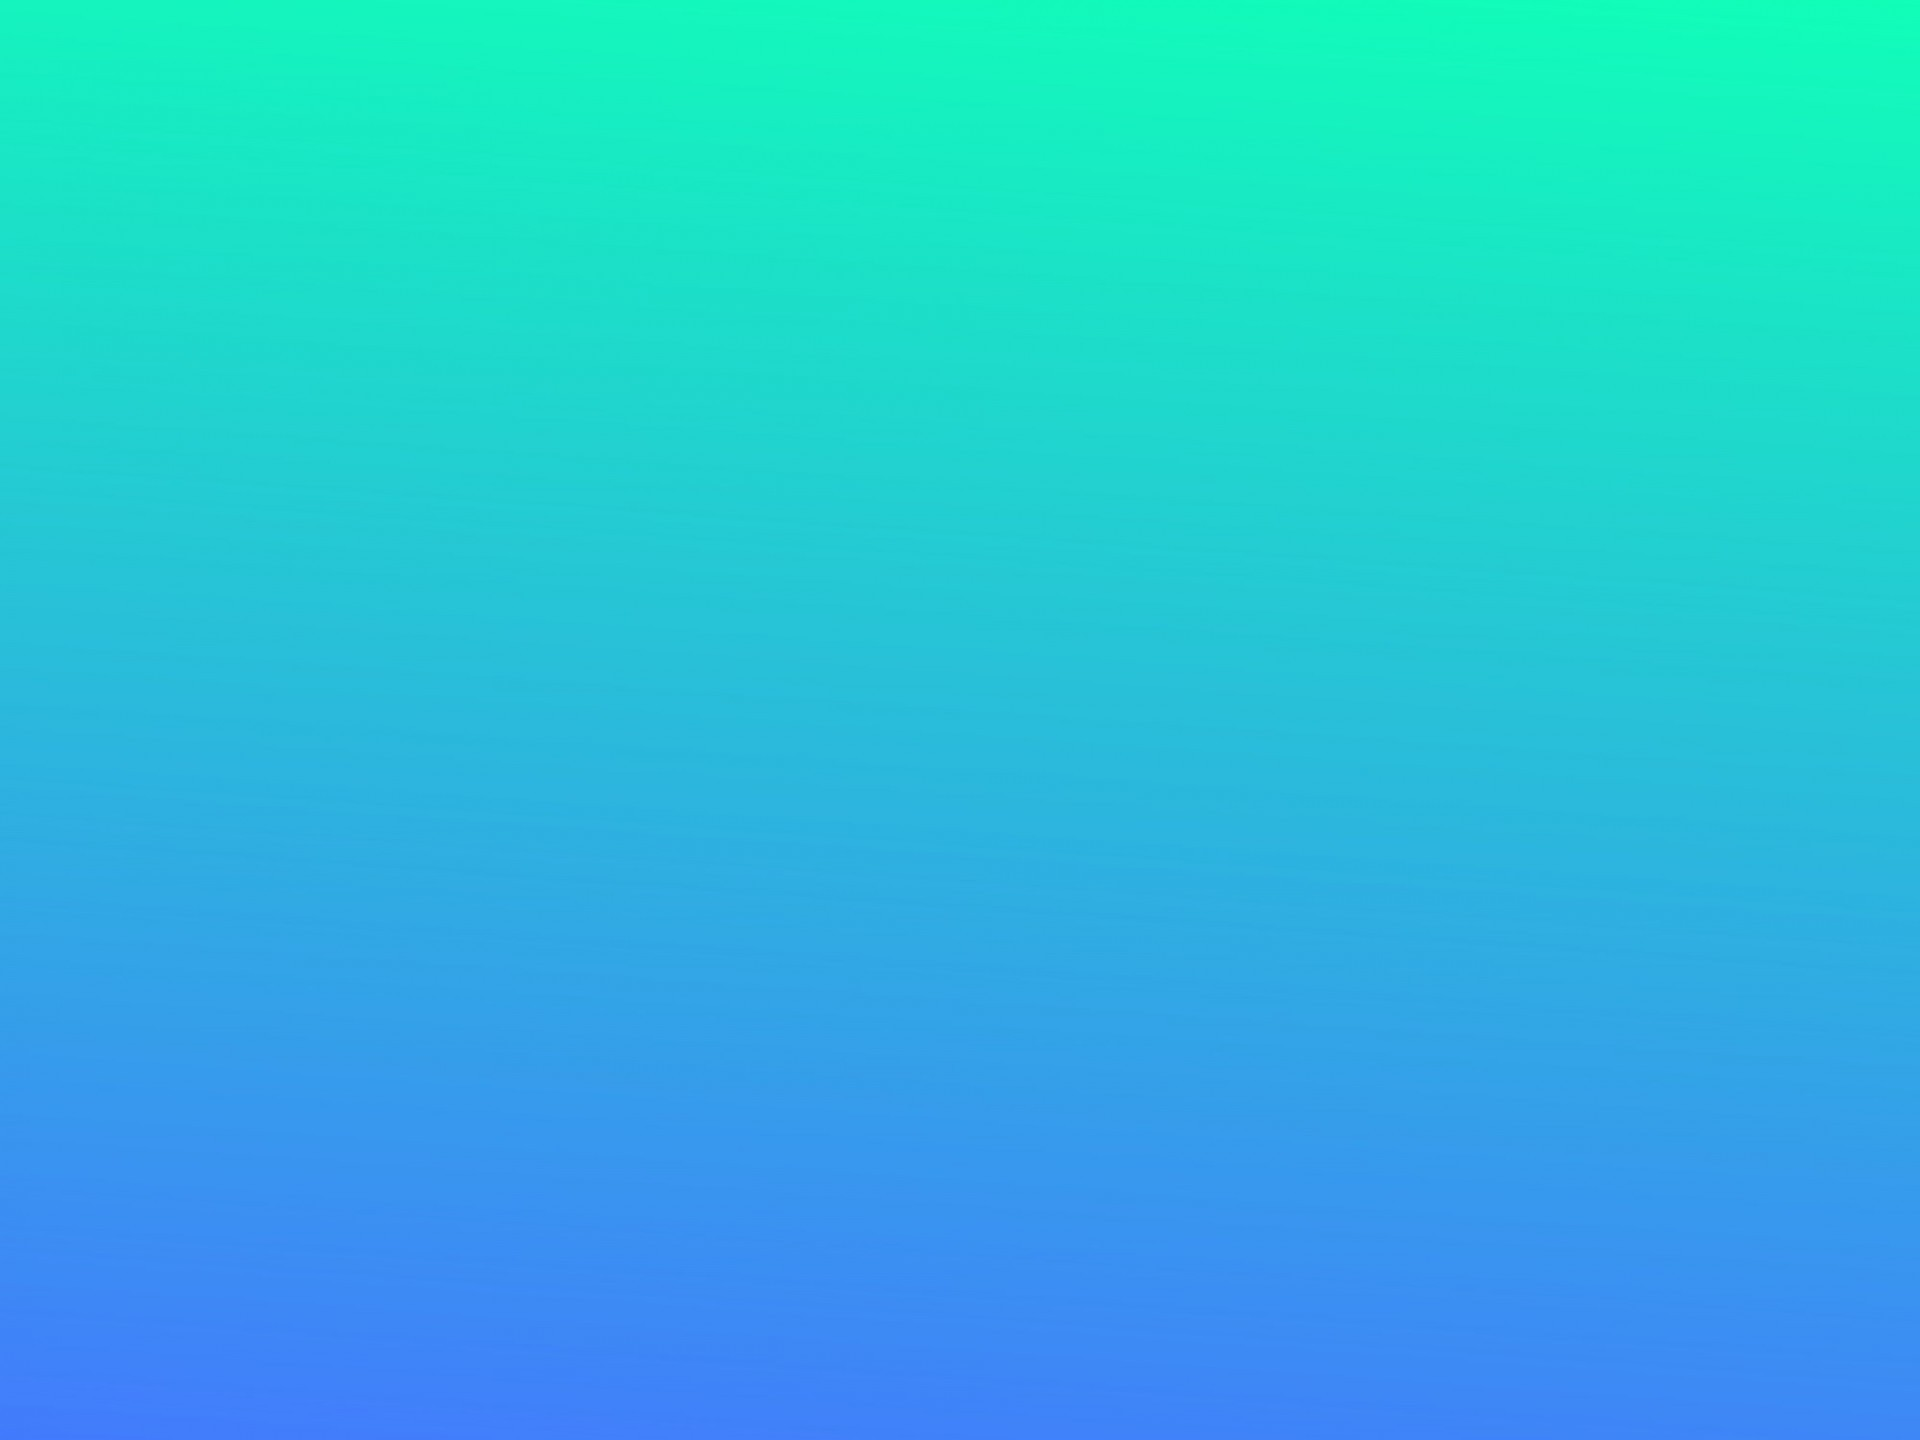 Elegant Iphone Wallpaper Aqua Background 183 ① Download Free Hd Backgrounds For